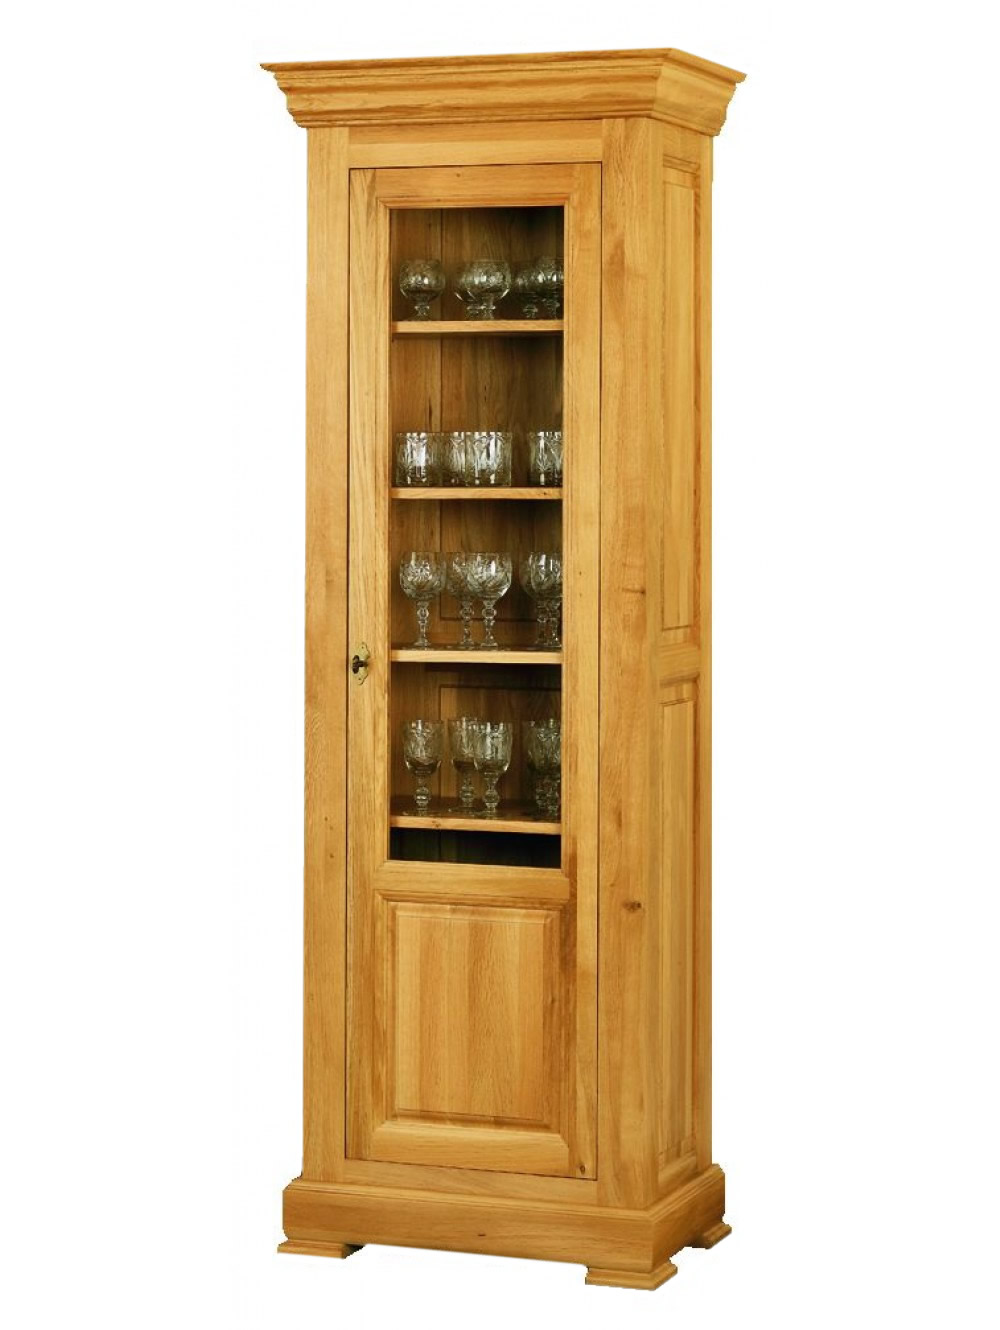 Narrow Glazed Cabinet 511280